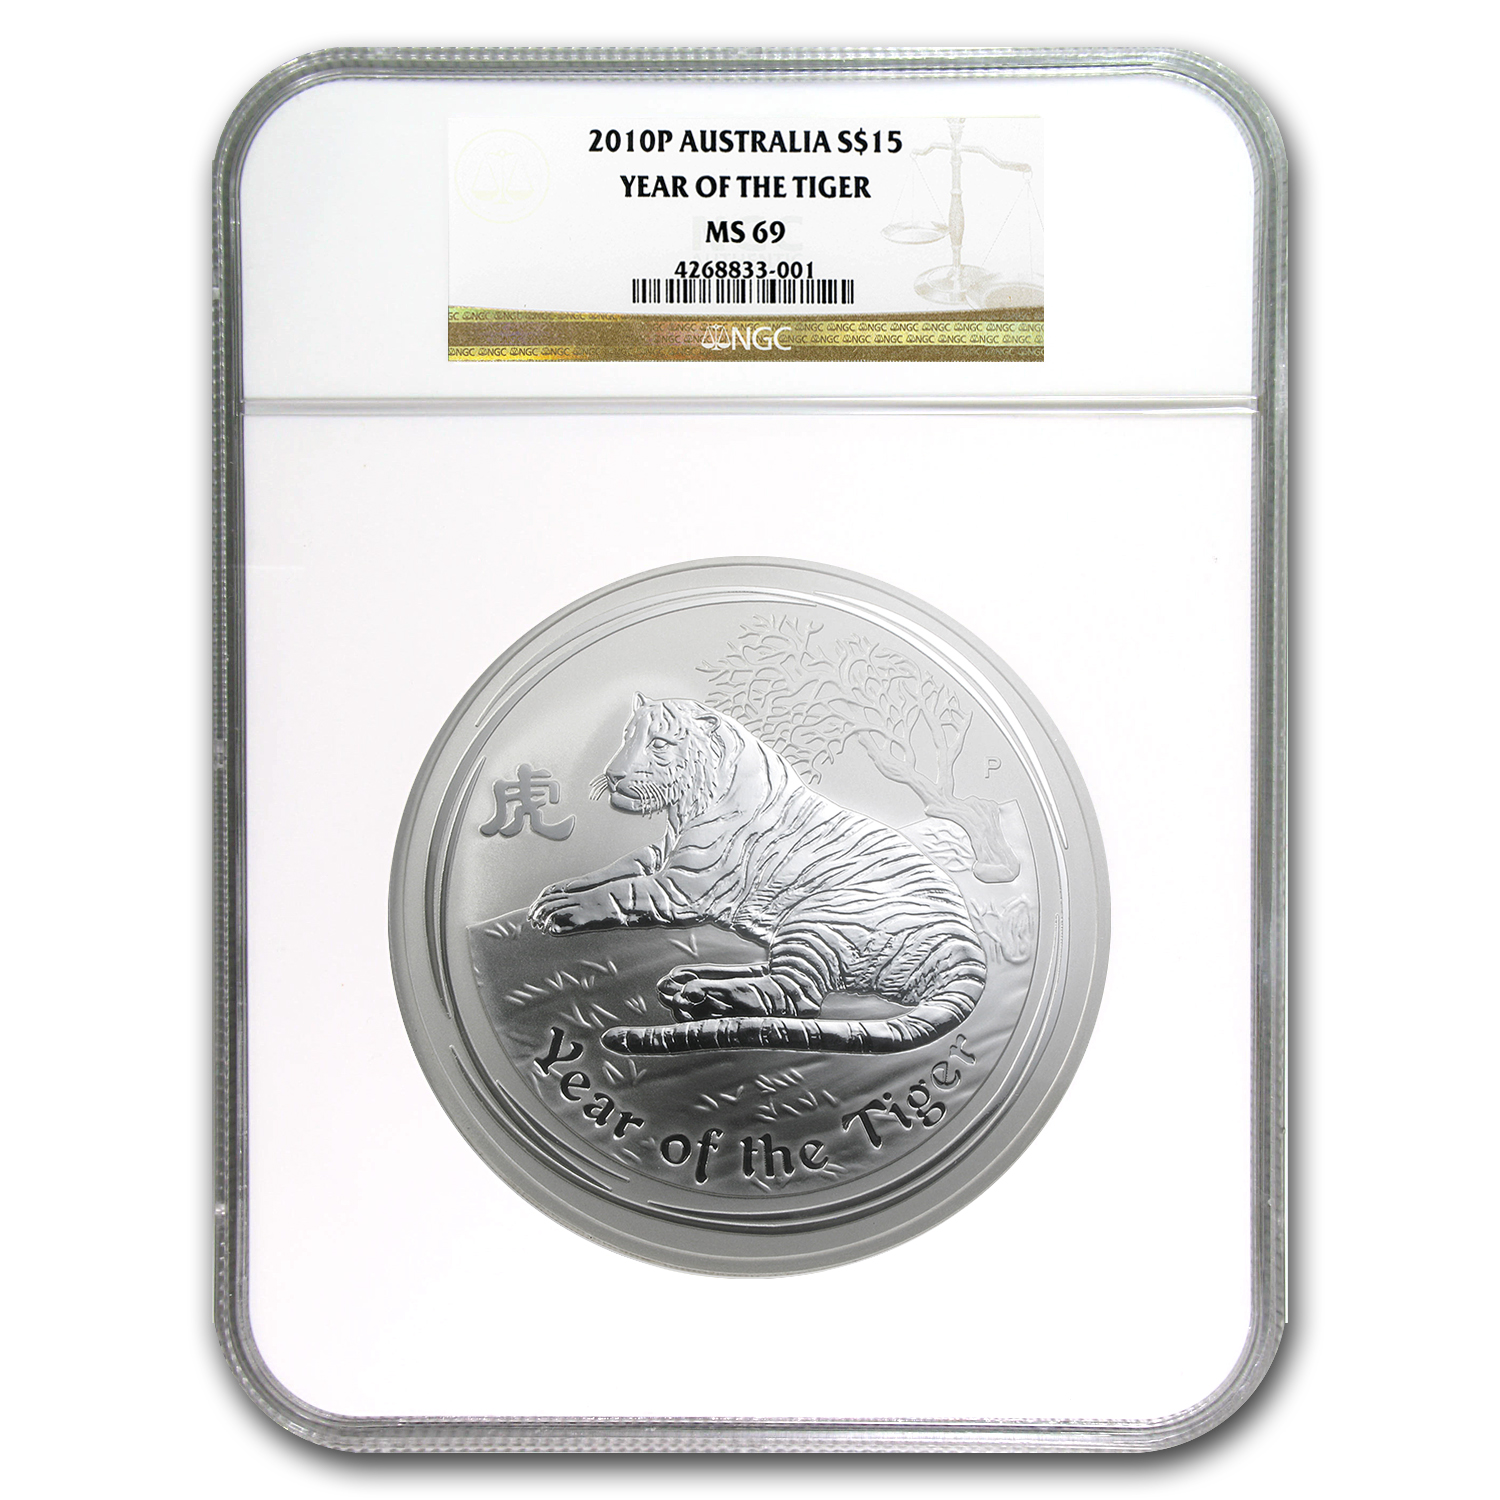 2010 Australia 1/2 kilo Silver Year of the Tiger MS-69 NGC (SII)